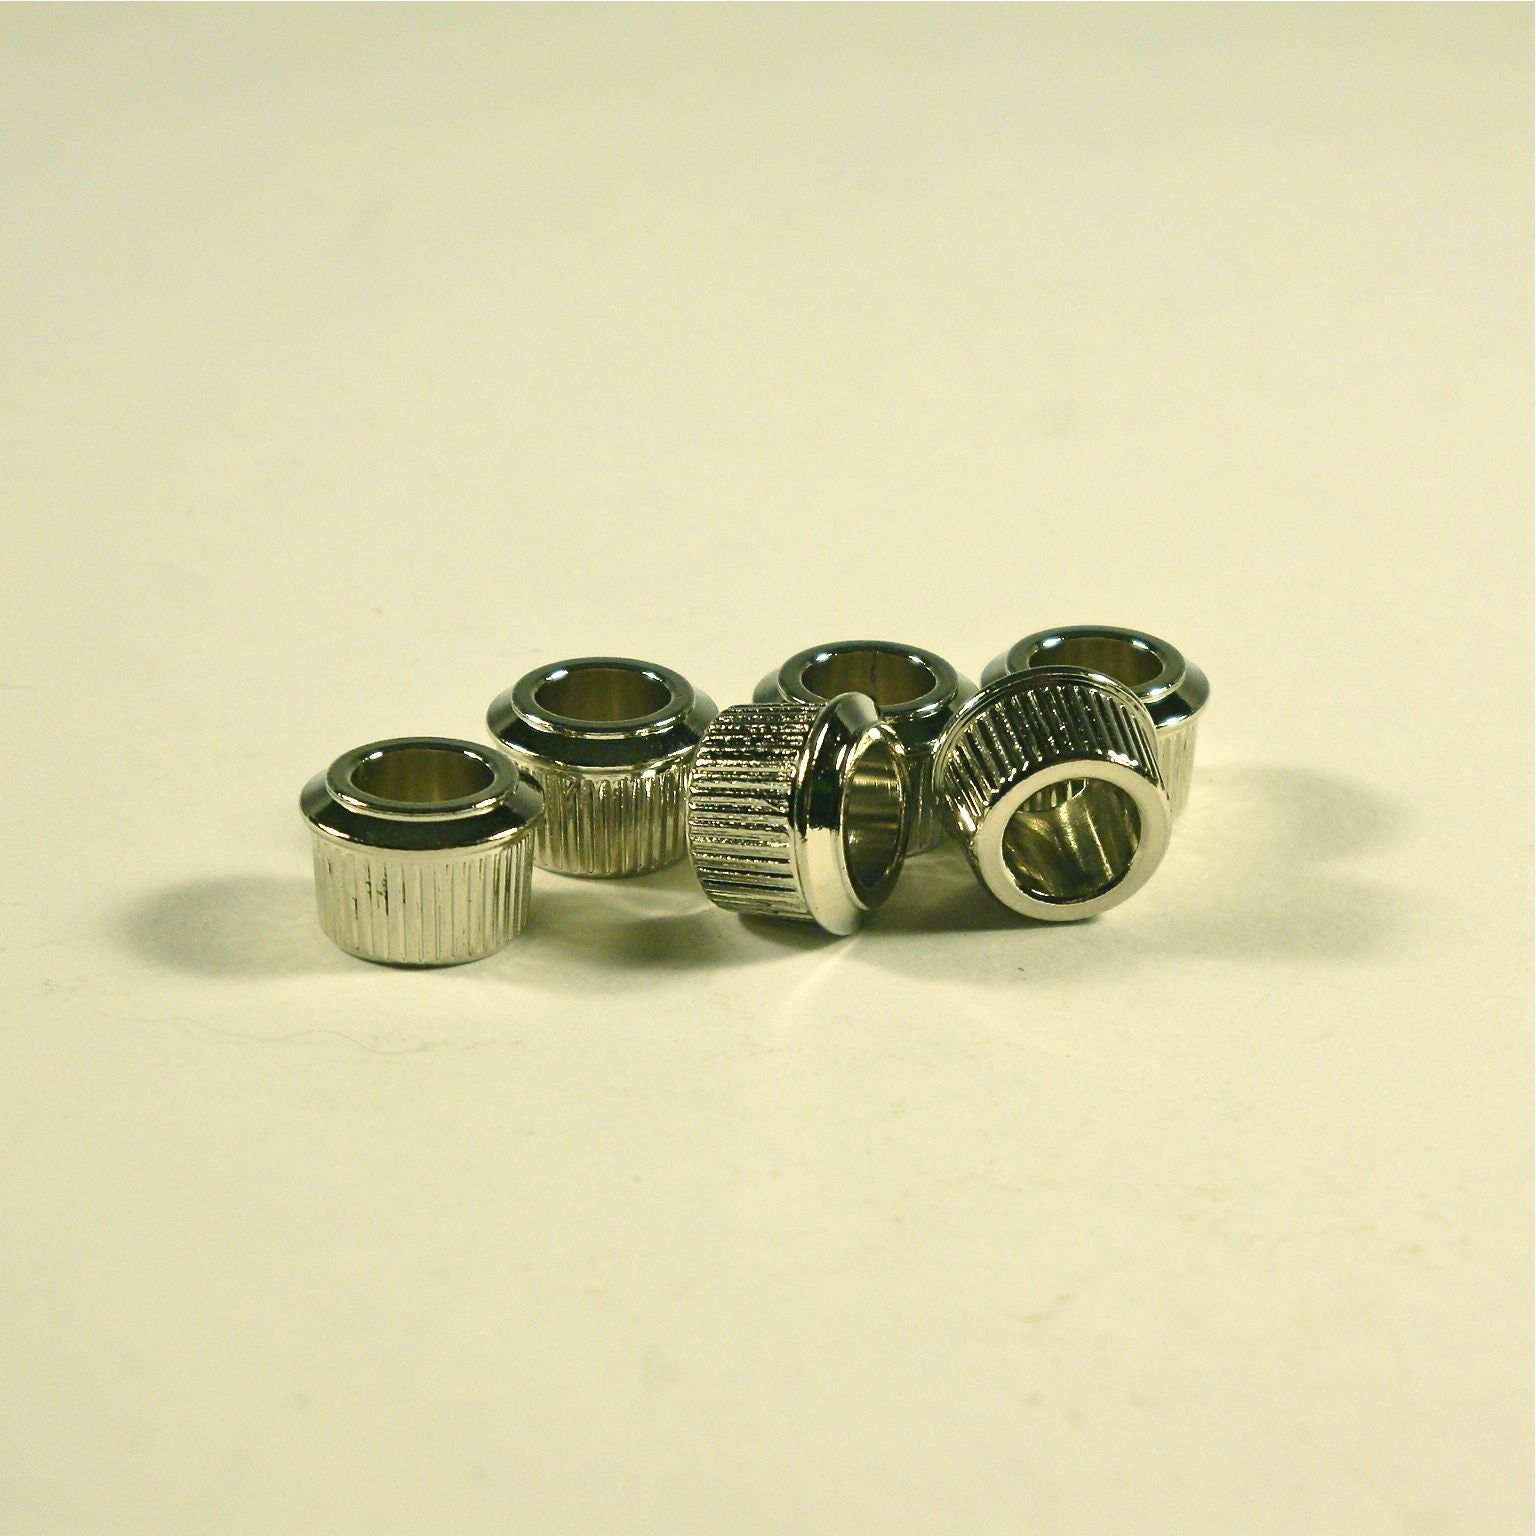 Set of 6 conversion tuner bushings